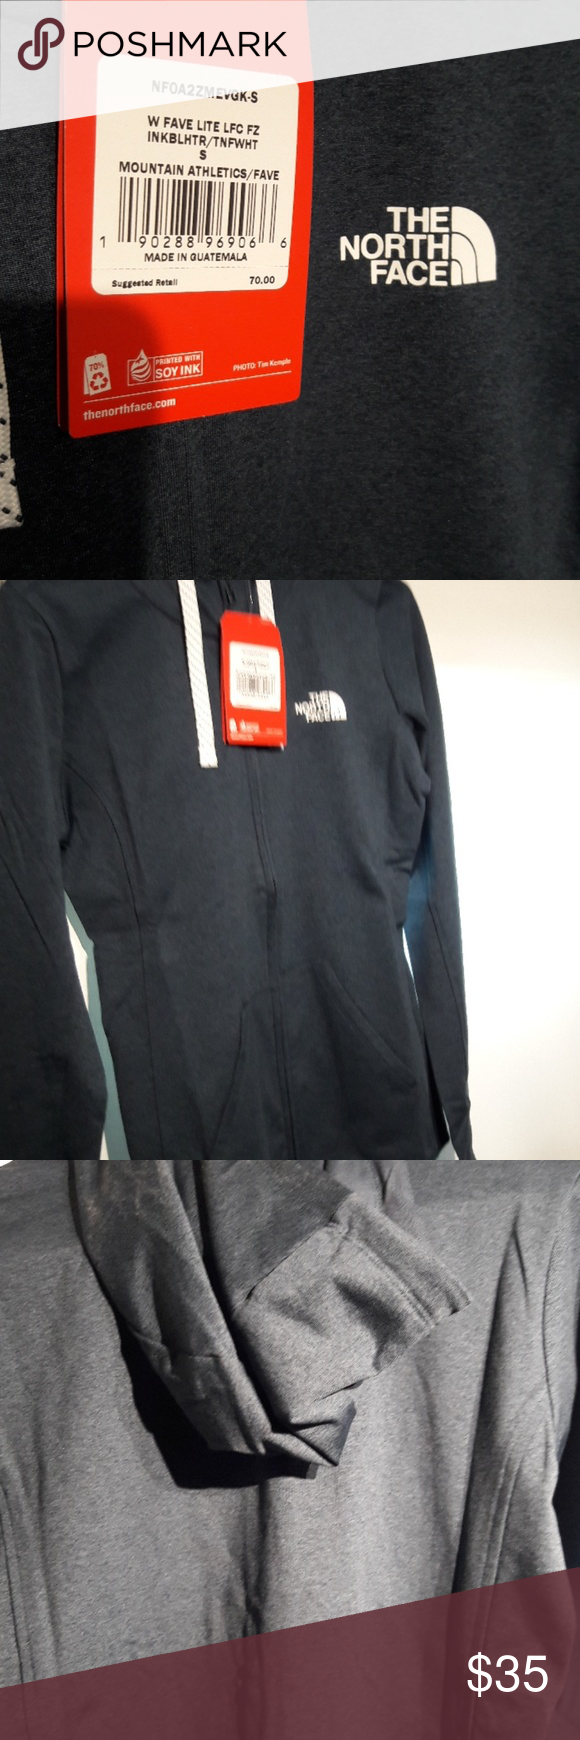 North face Jacket Womens North Face Jacket Size s/p W Fave Lite LFC FZ  Inkblthr/Tnfwht Mountain Athletic/Fave The North Face Jackets & Coats Utility Jackets #wfaves North face Jacket Womens North Face Jacket Size s/p W Fave Lite LFC FZ  Inkblthr/Tnfwht Mountain Athletic/Fave The North Face Jackets & Coats Utility Jackets #wfaves